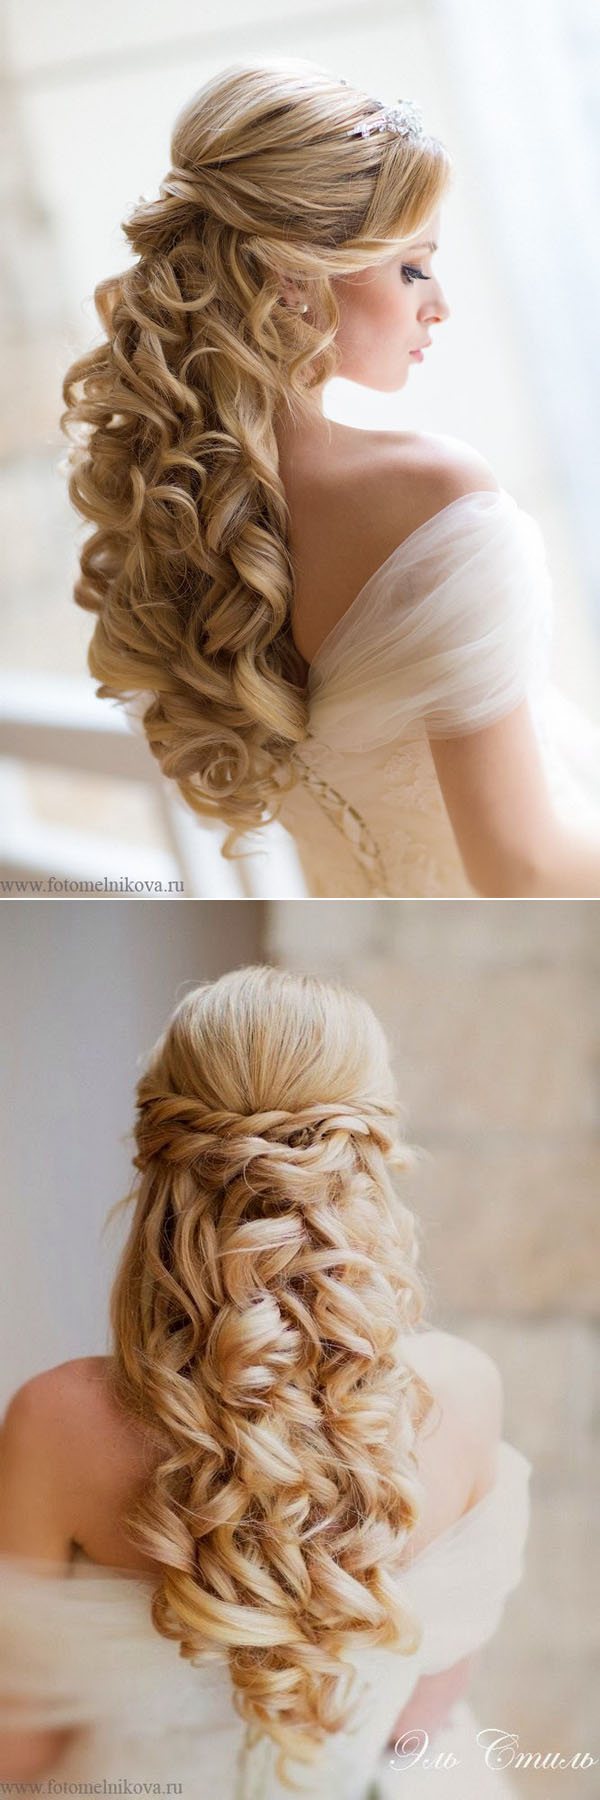 20 awesome half up half down wedding hairstyle ideas